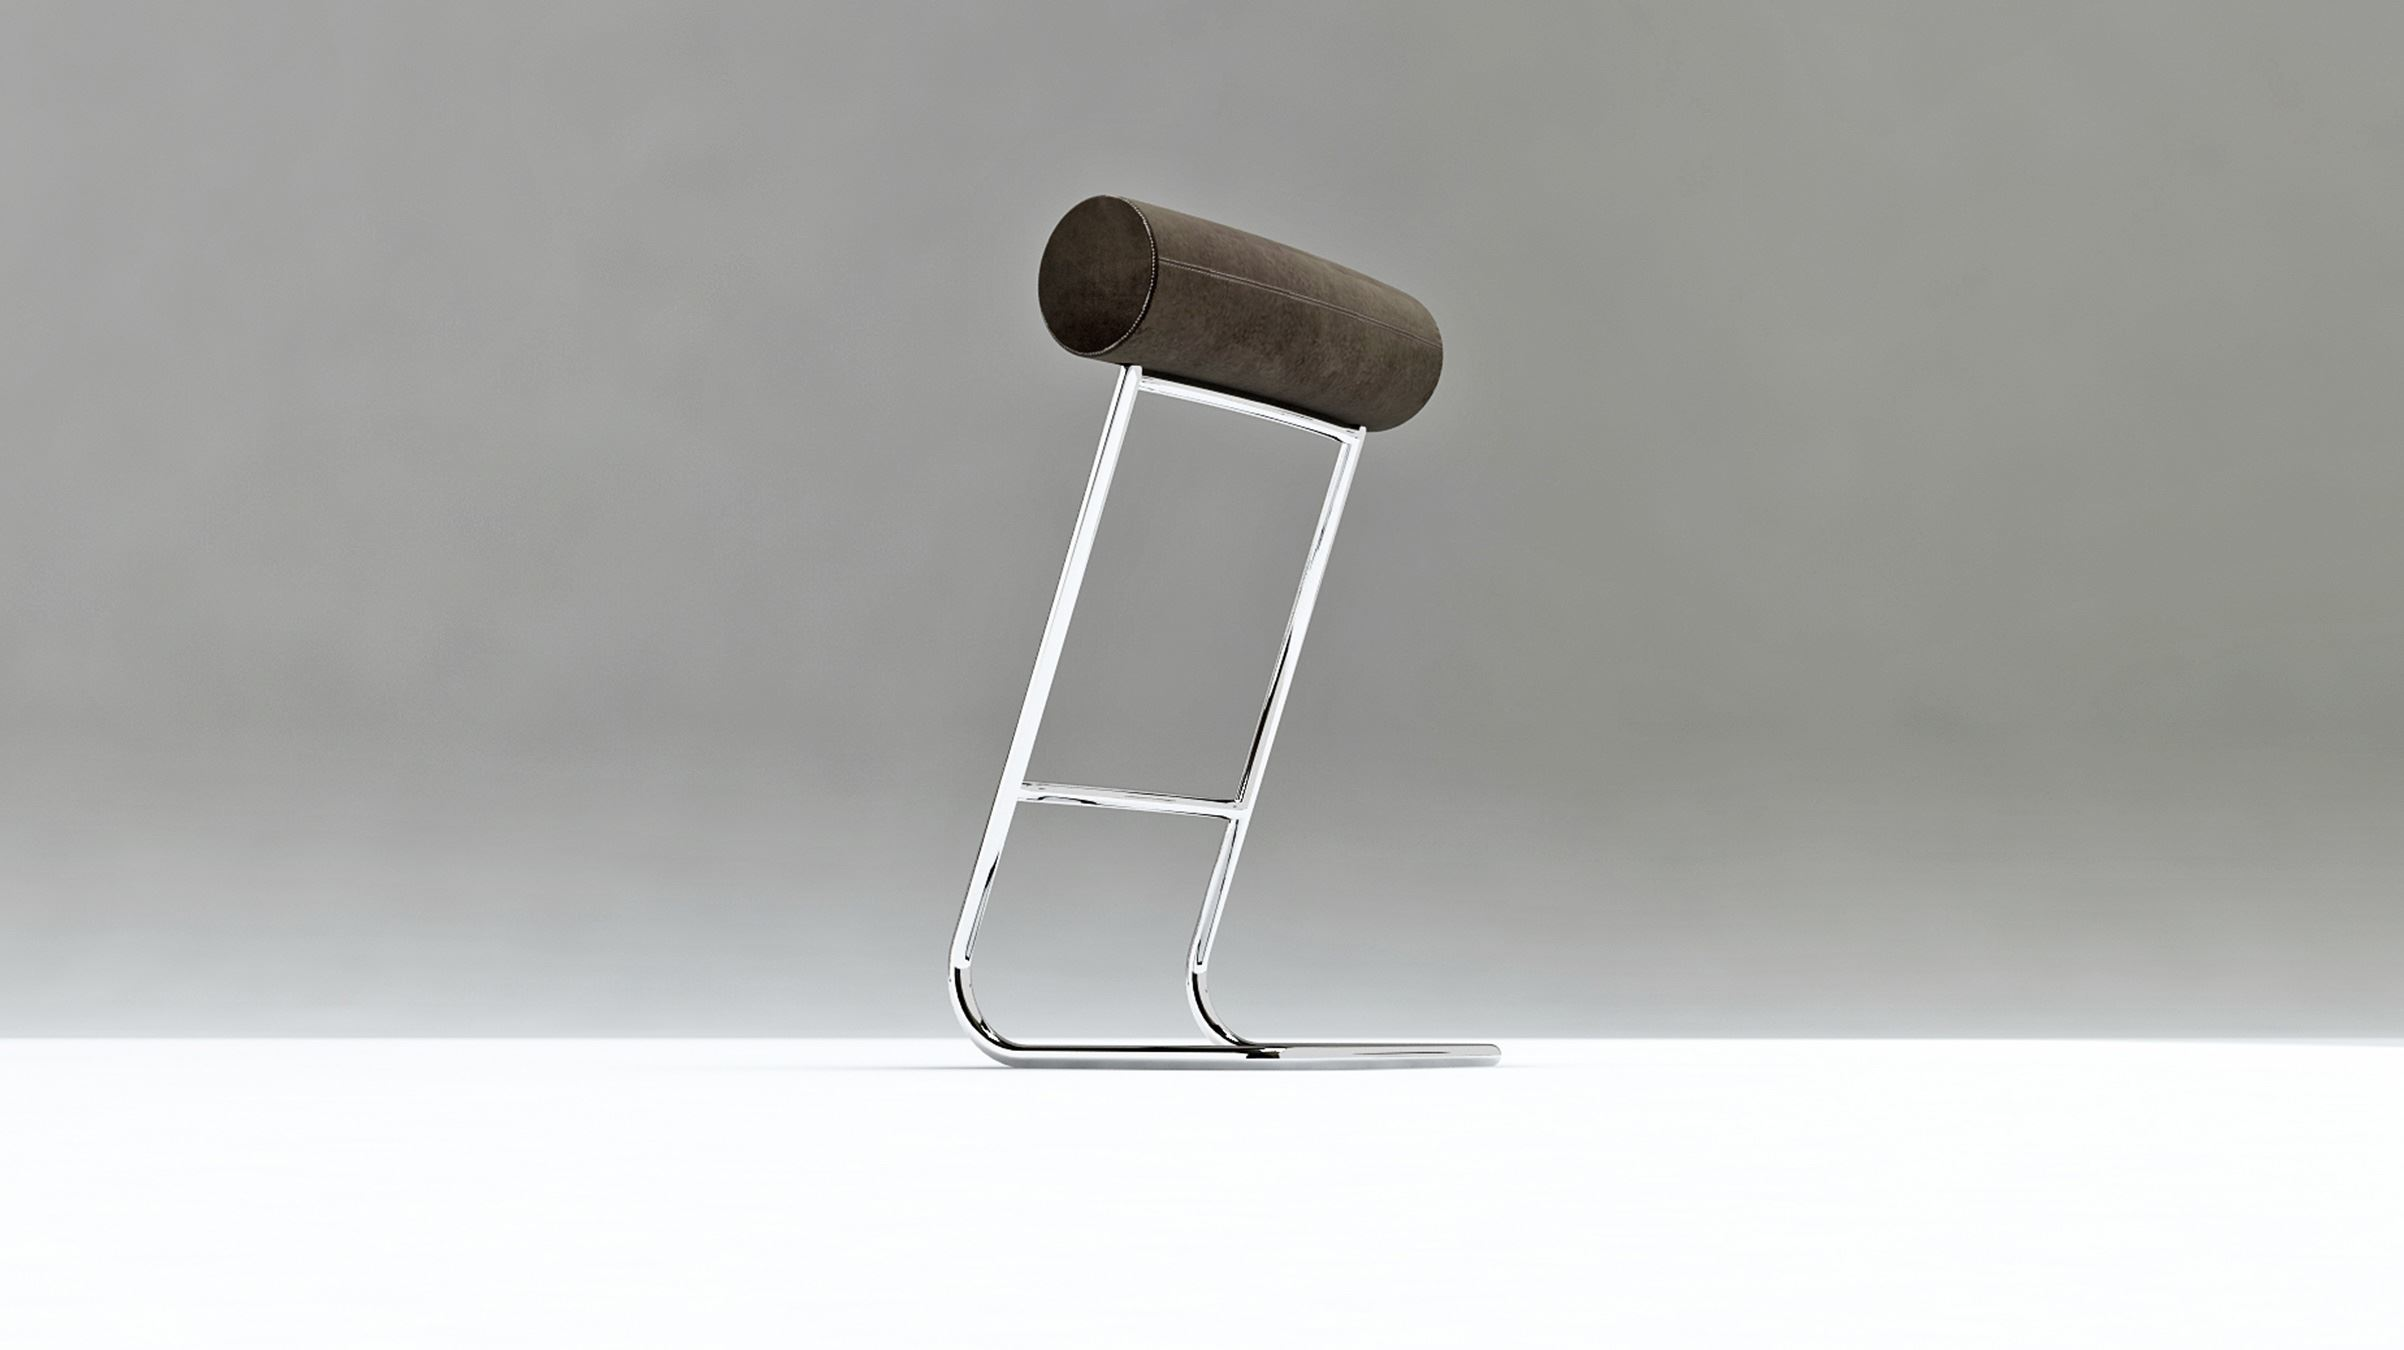 Kurt-Merki-Jr_branch-stool_03.jpg